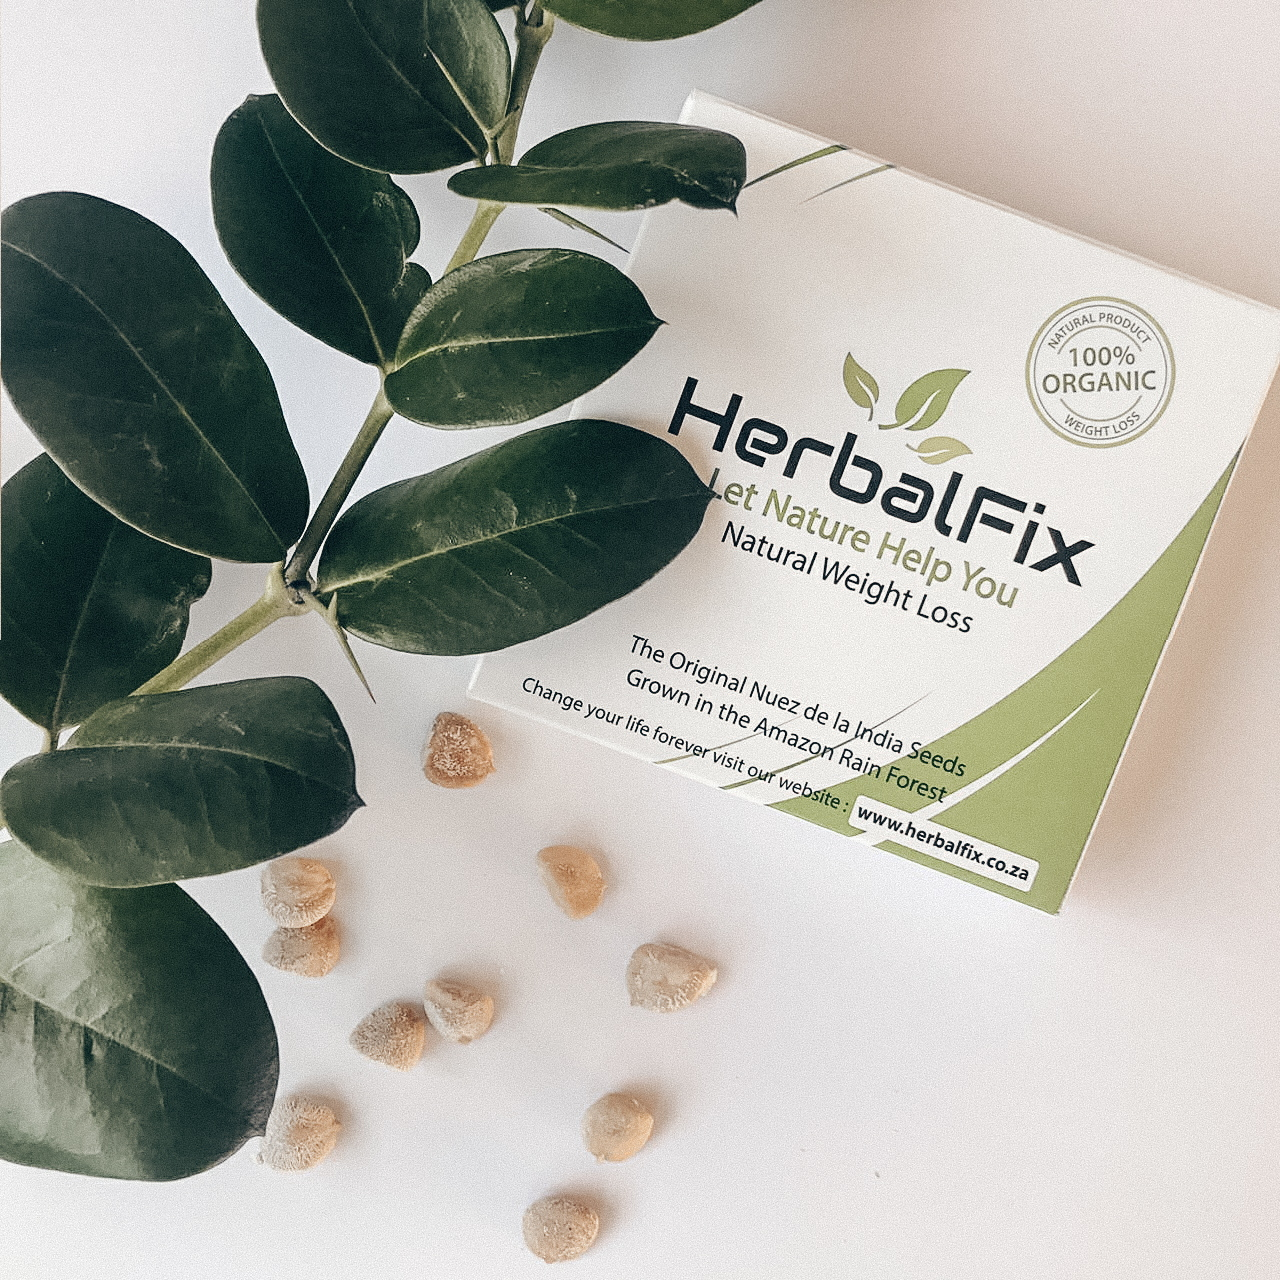 HERBALFIX - NATURAL WEIGHT LOSS SEED - Blog It With Jody